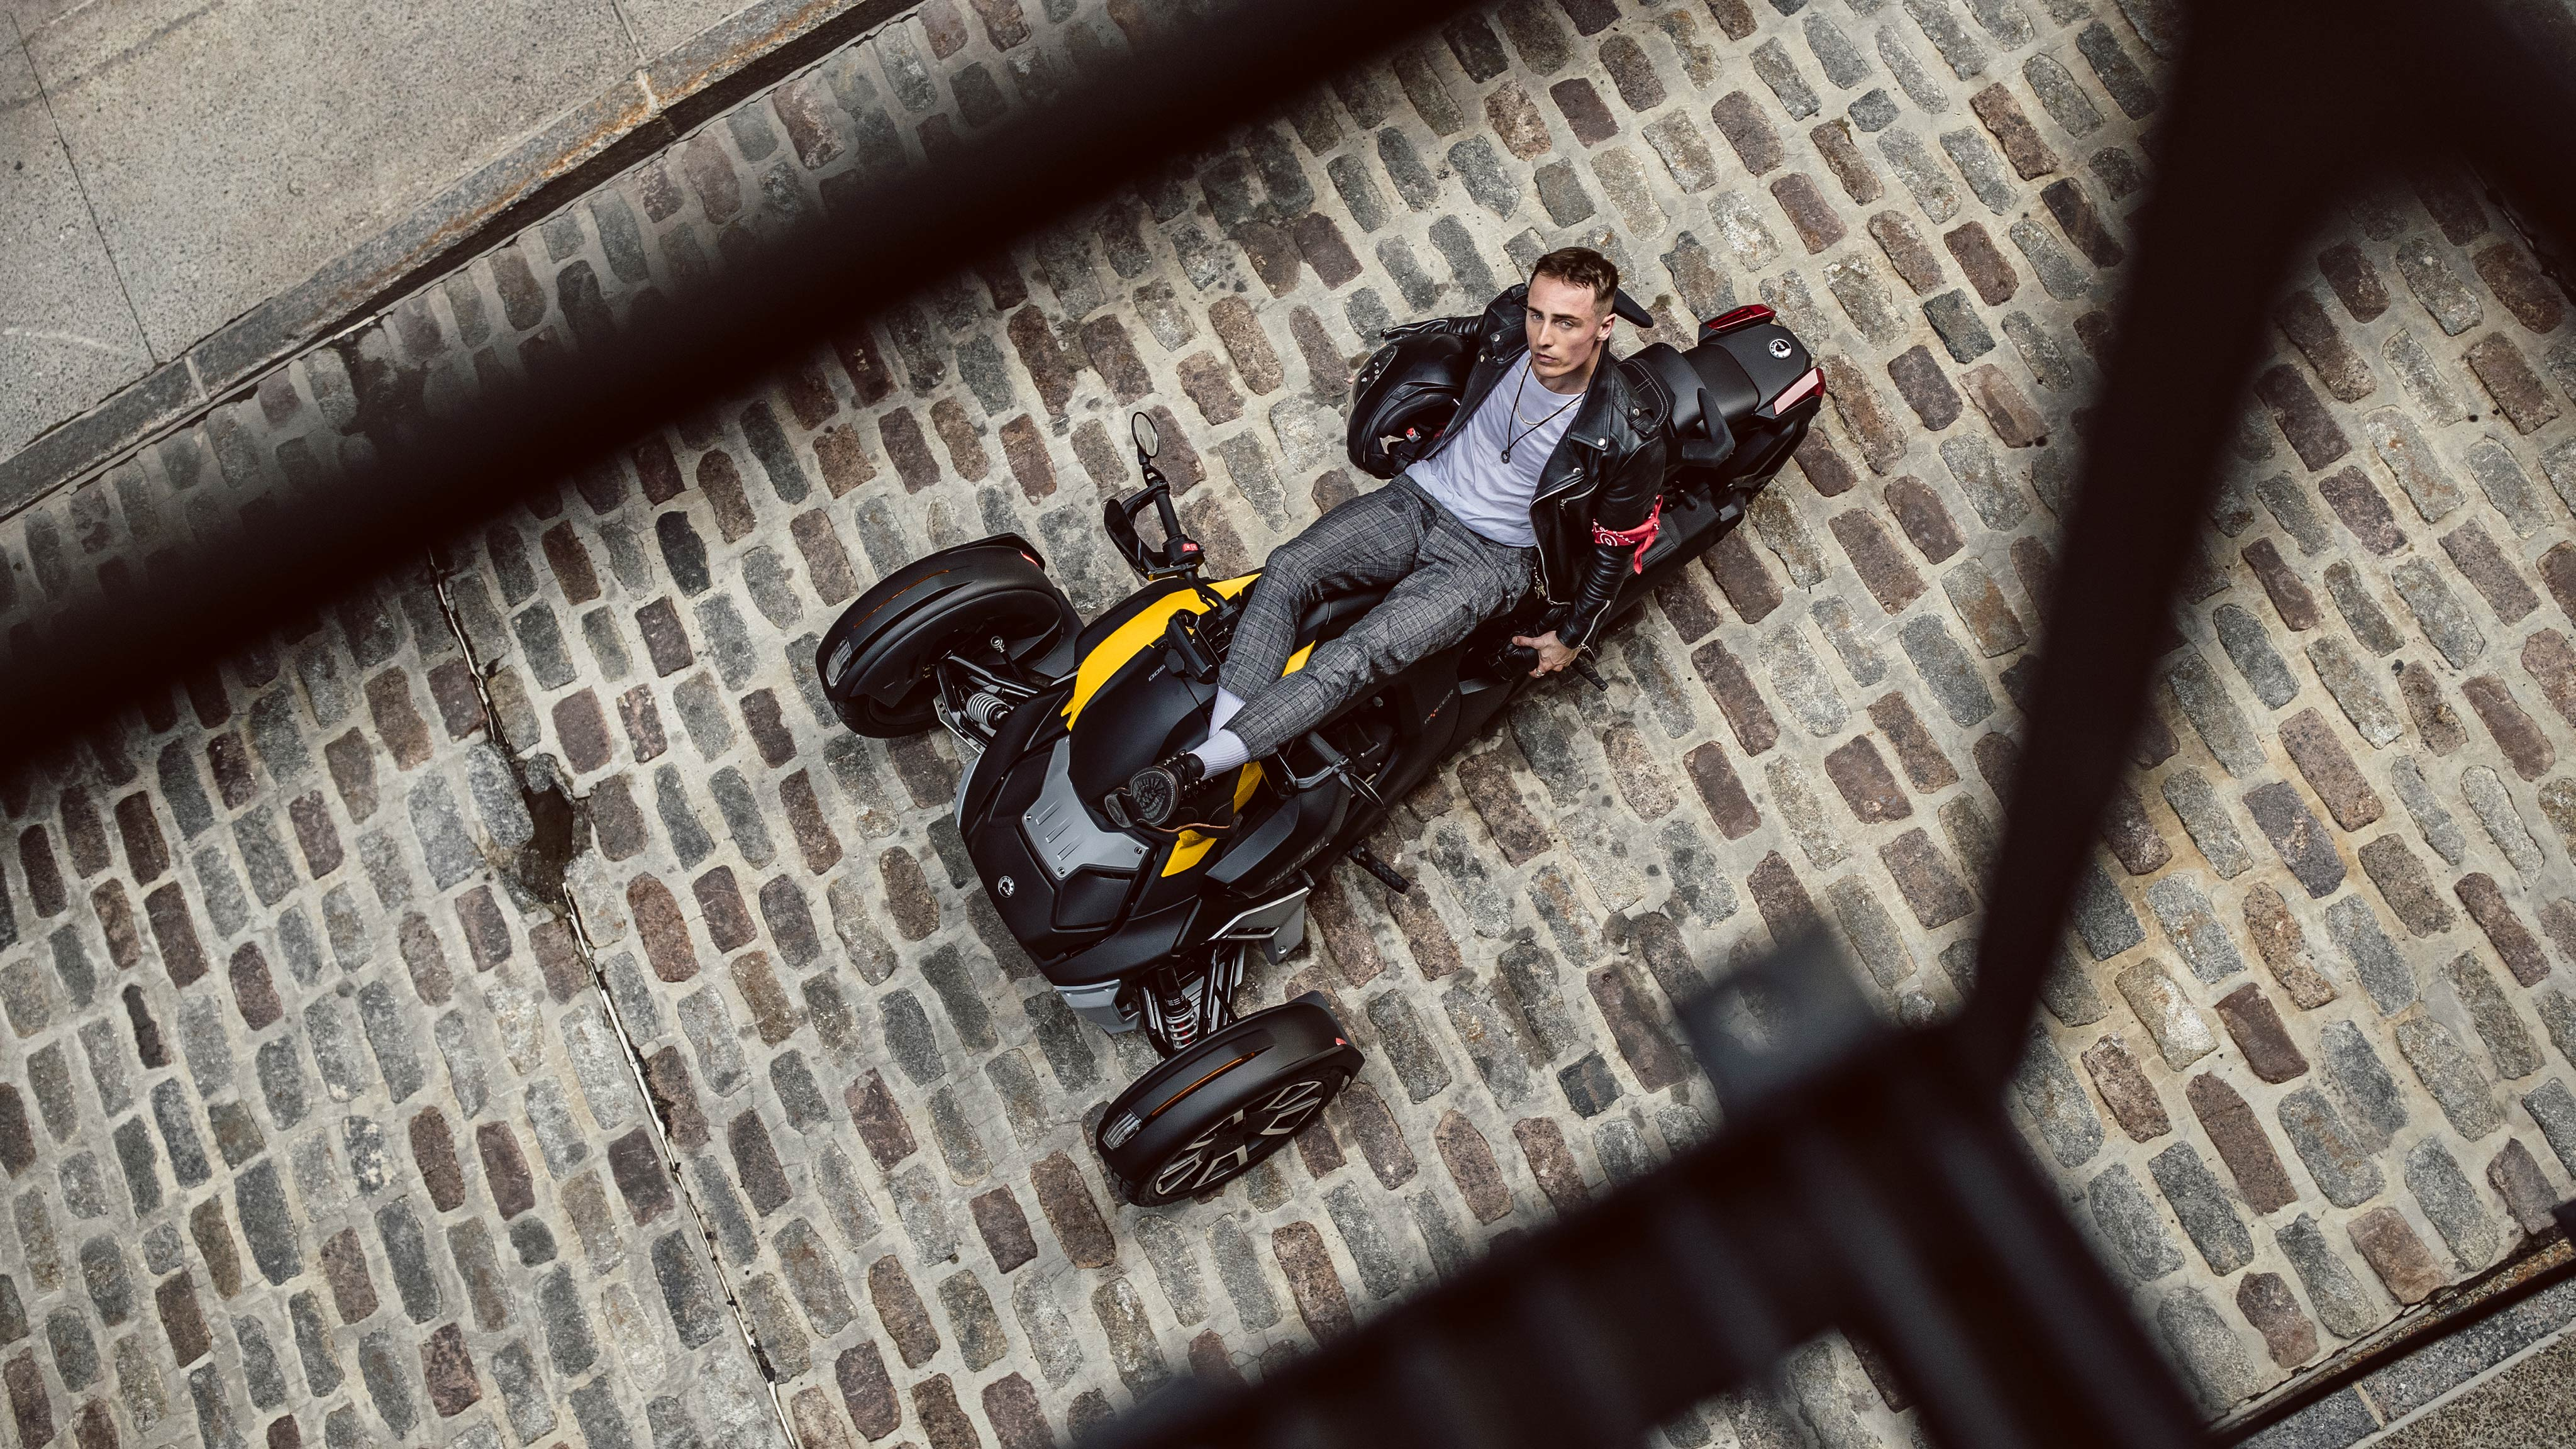 A man reclining on his Can-Am vehicle, which is parked in a cobblestone alleyway